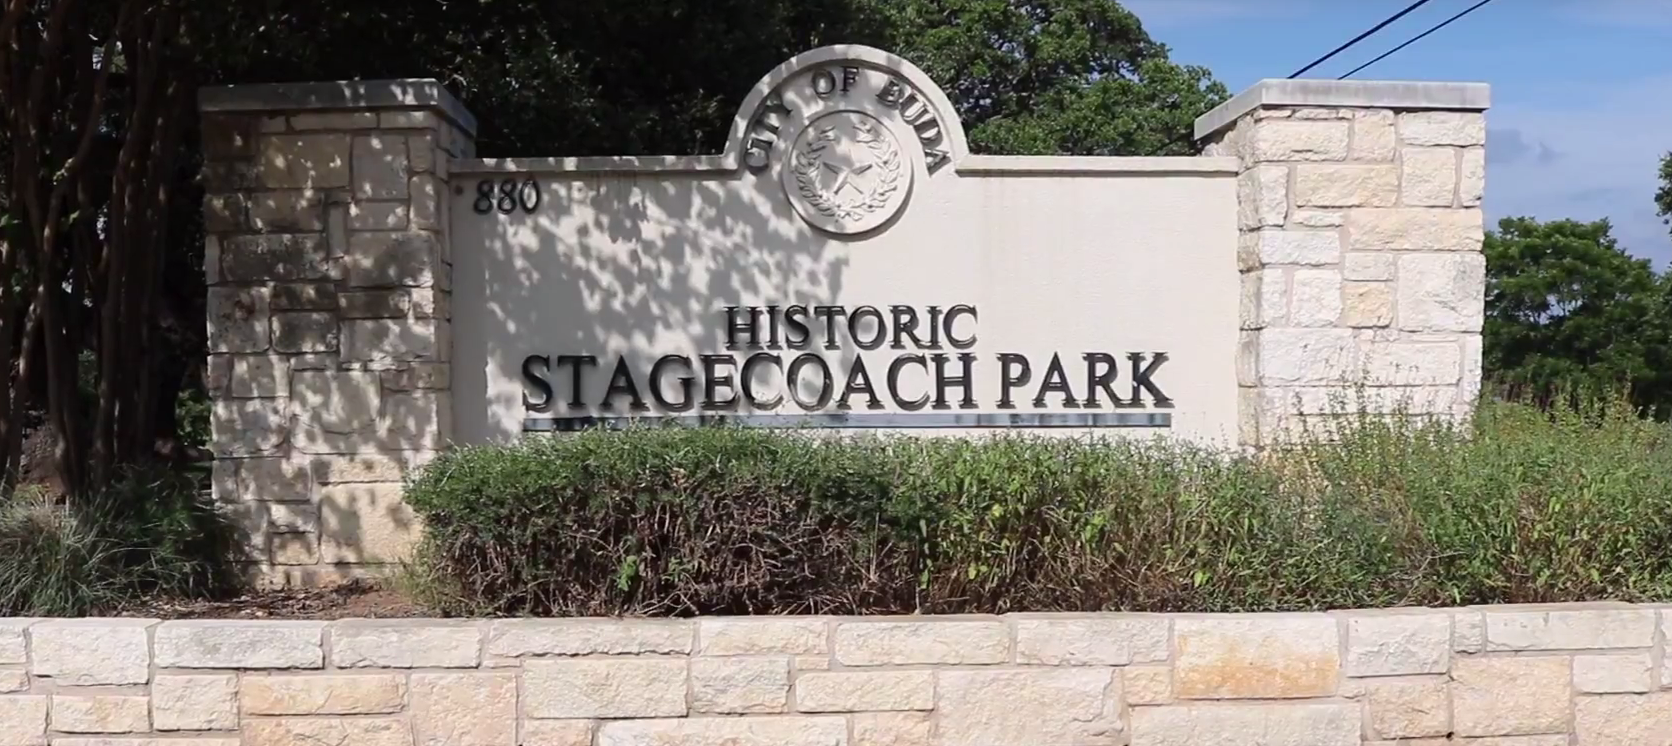 stagecoach park sign pic